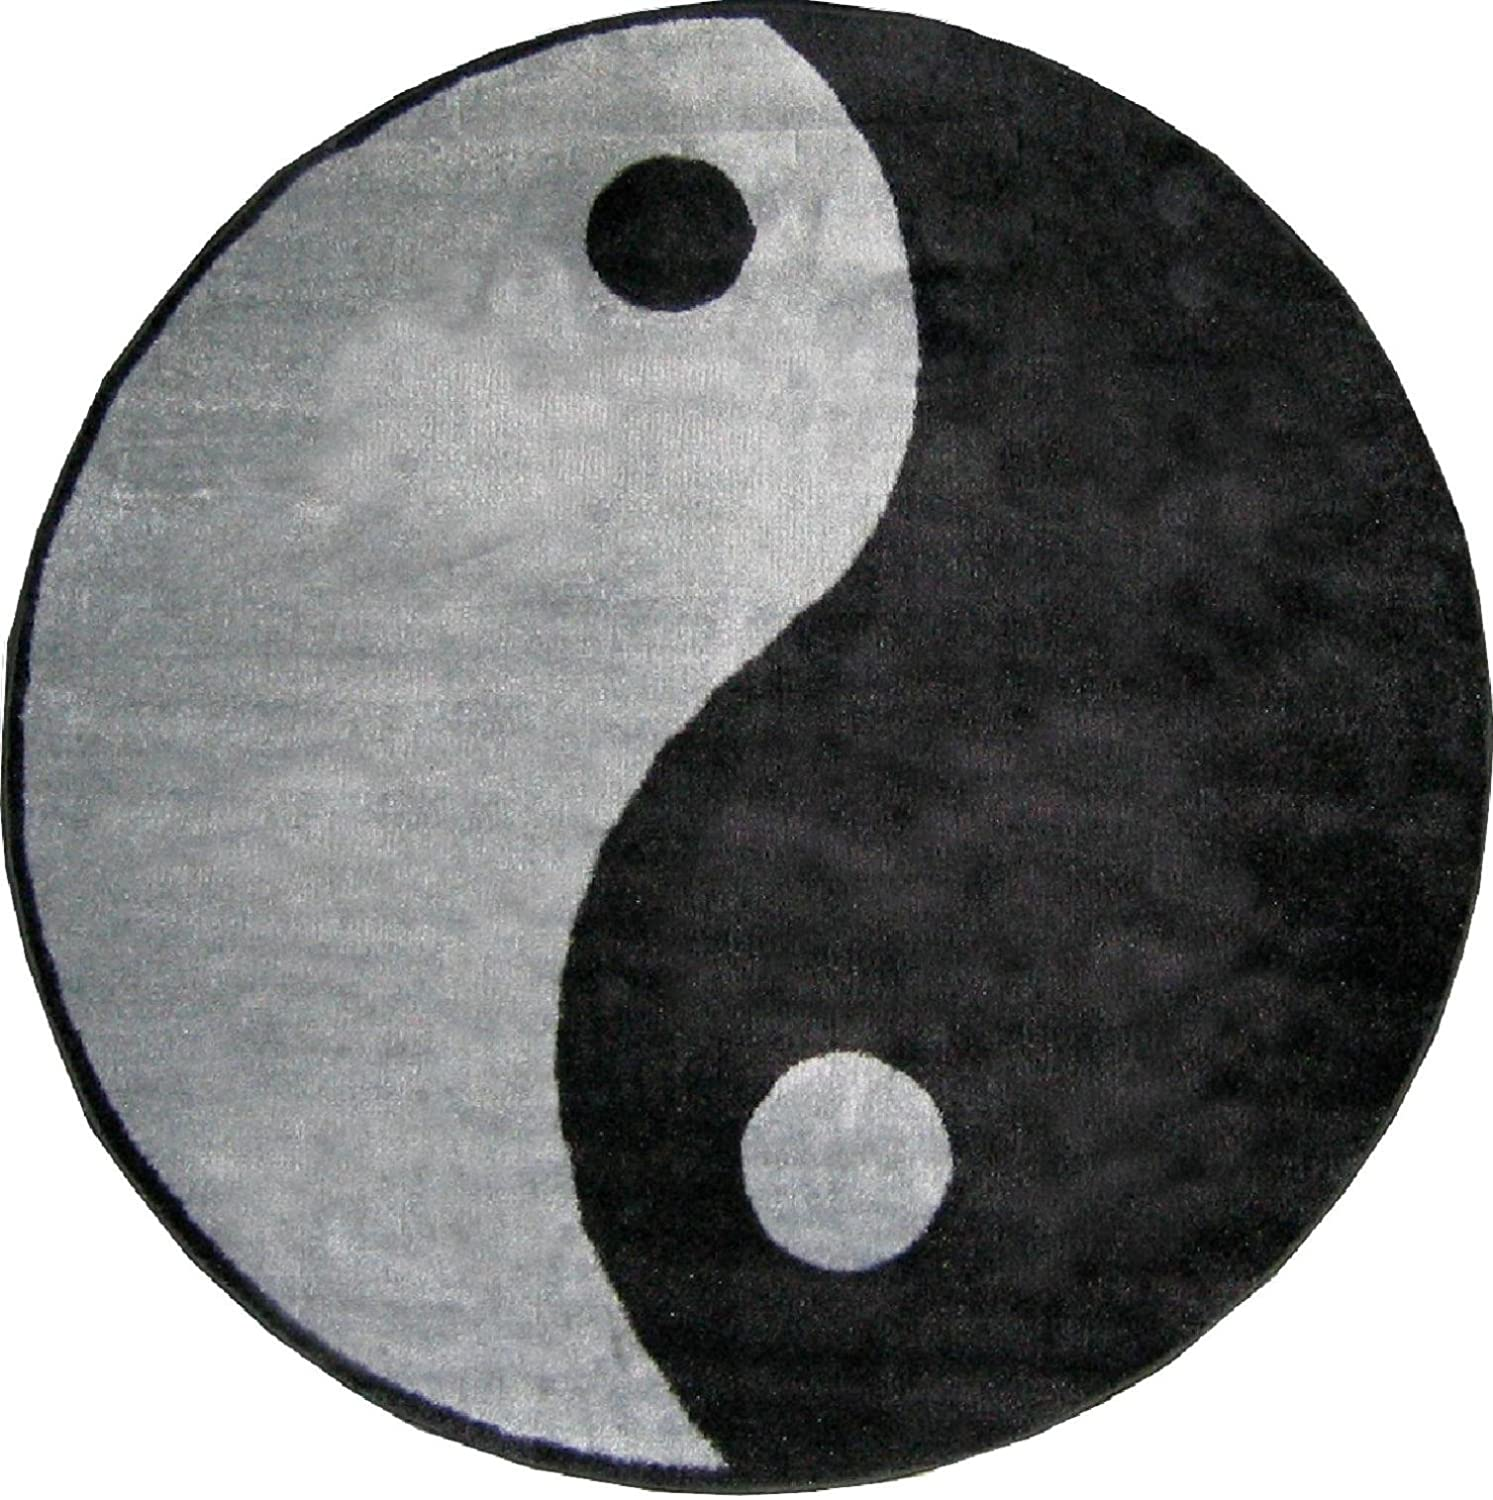 Elegant Amazon.com: Fun Rugs FTS 152 51RD Ying Yang Accent Rug, 51 Inch Round:  Kitchen U0026 Dining